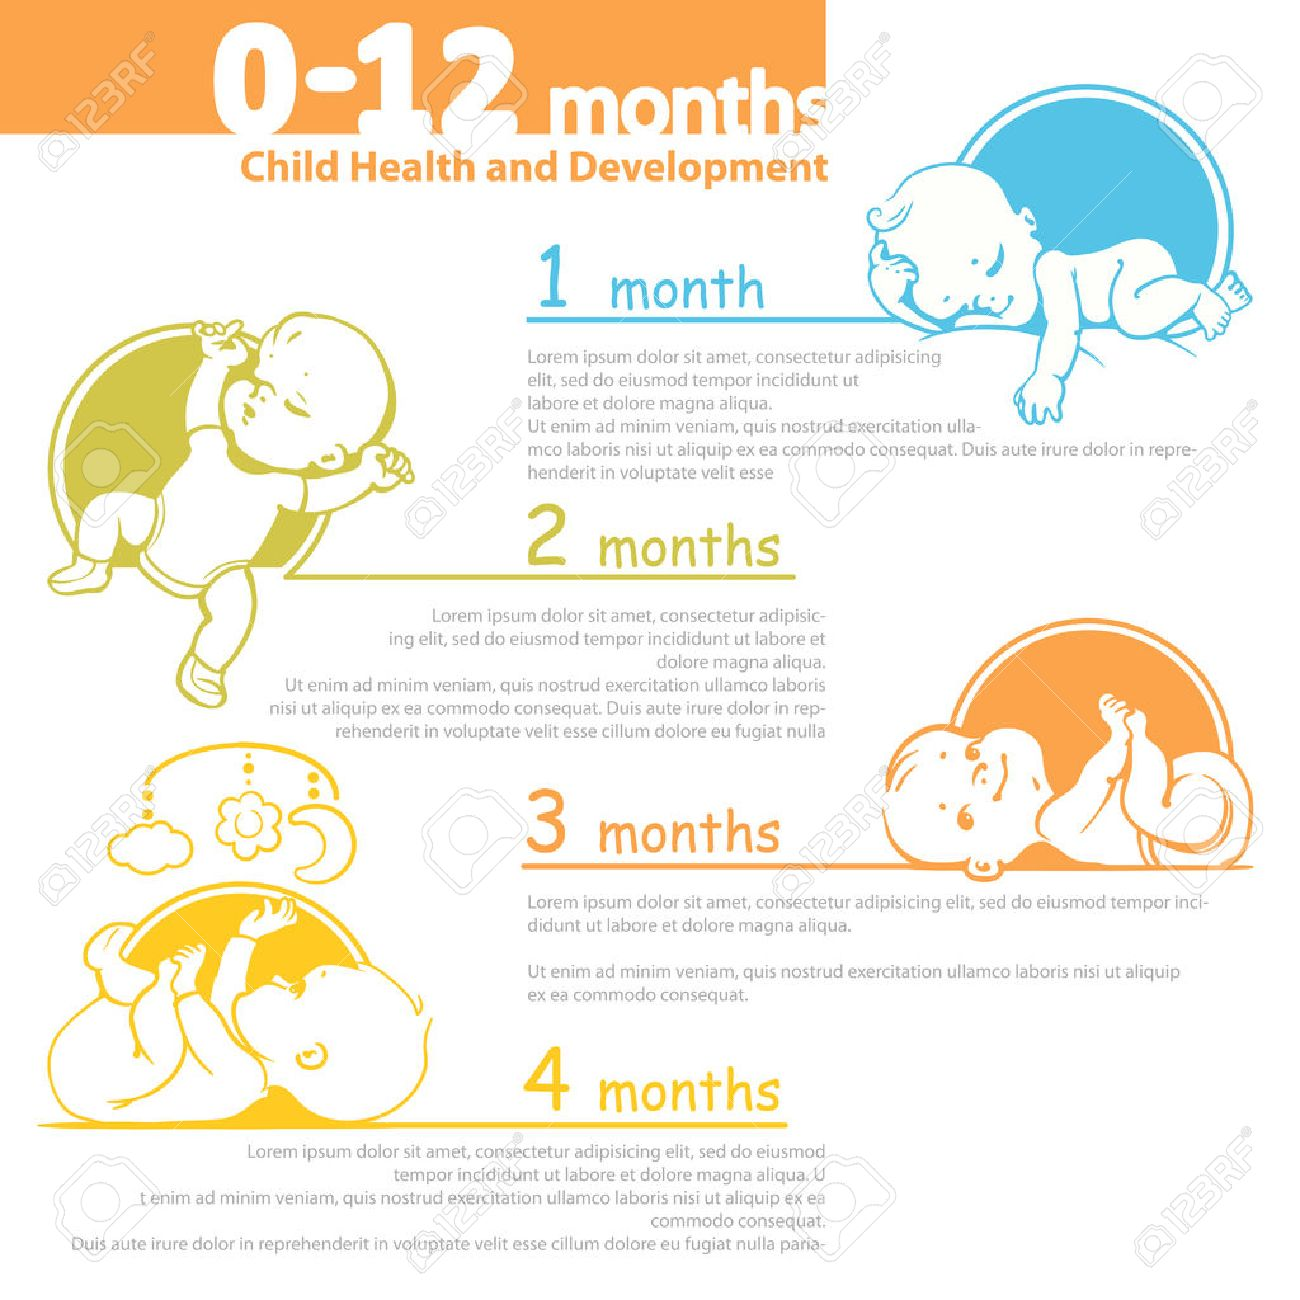 Set of child health and development icon.  Presentation of baby growth from newborn to toddler with text. Stock Vector - 56582530